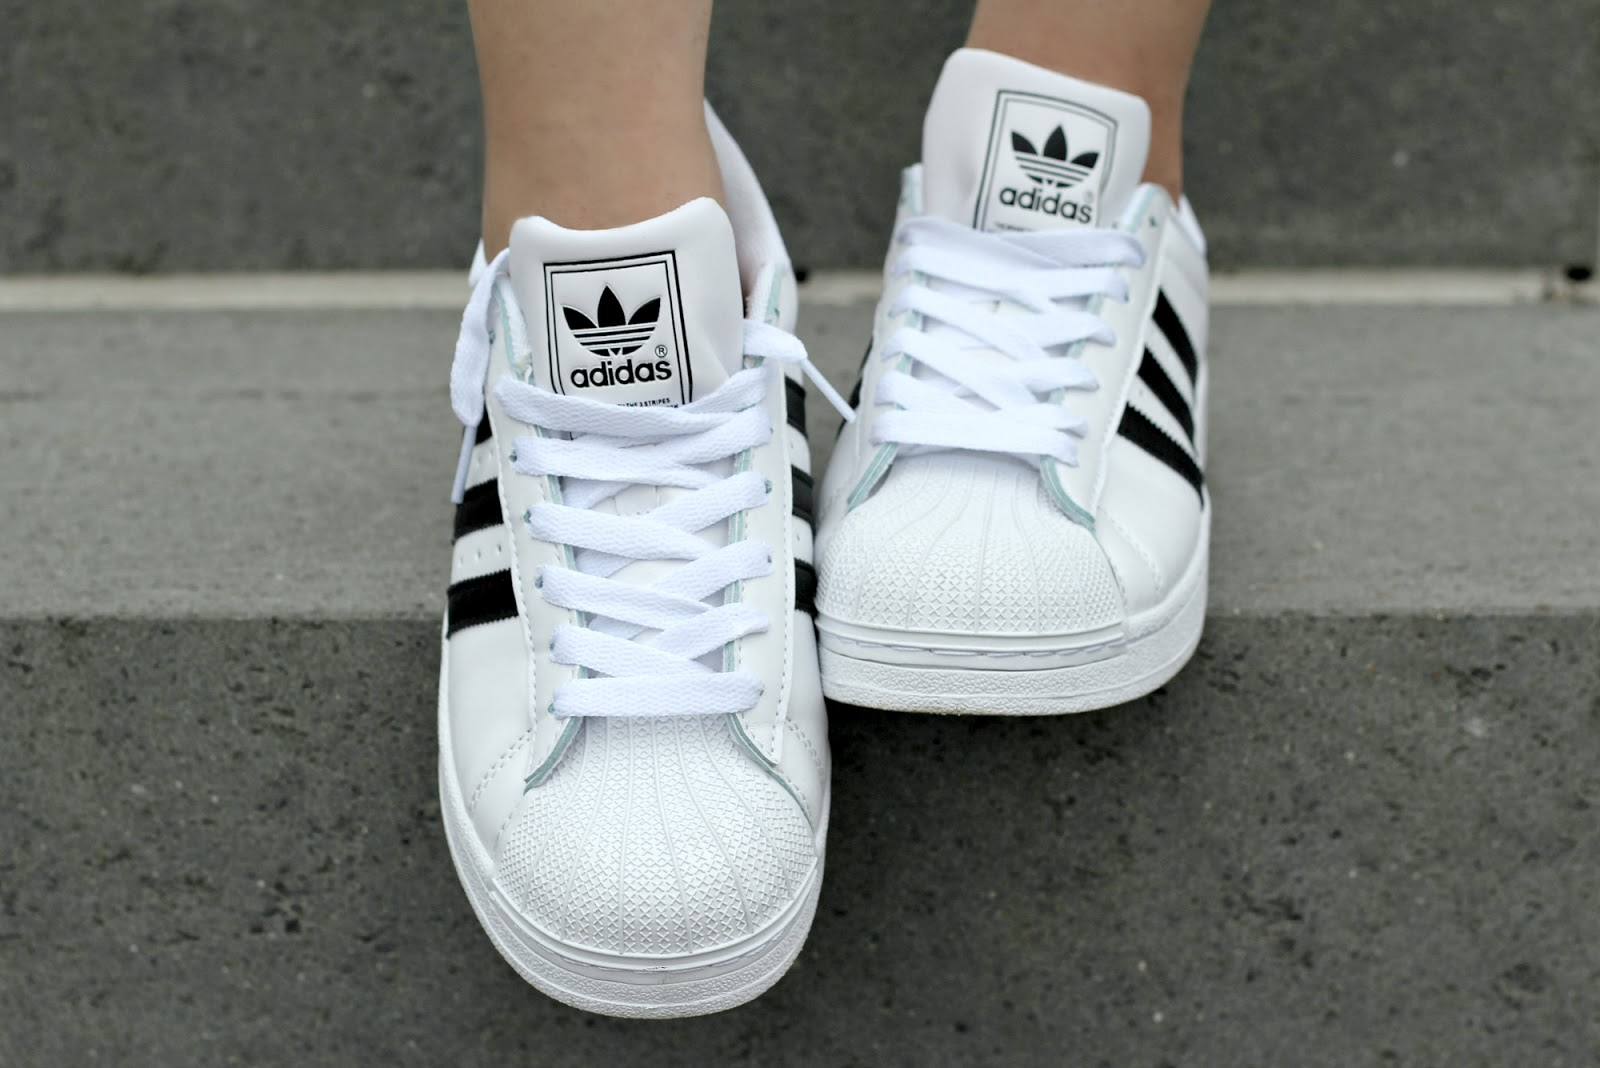 Adidas Superstar White Outfit Ideas